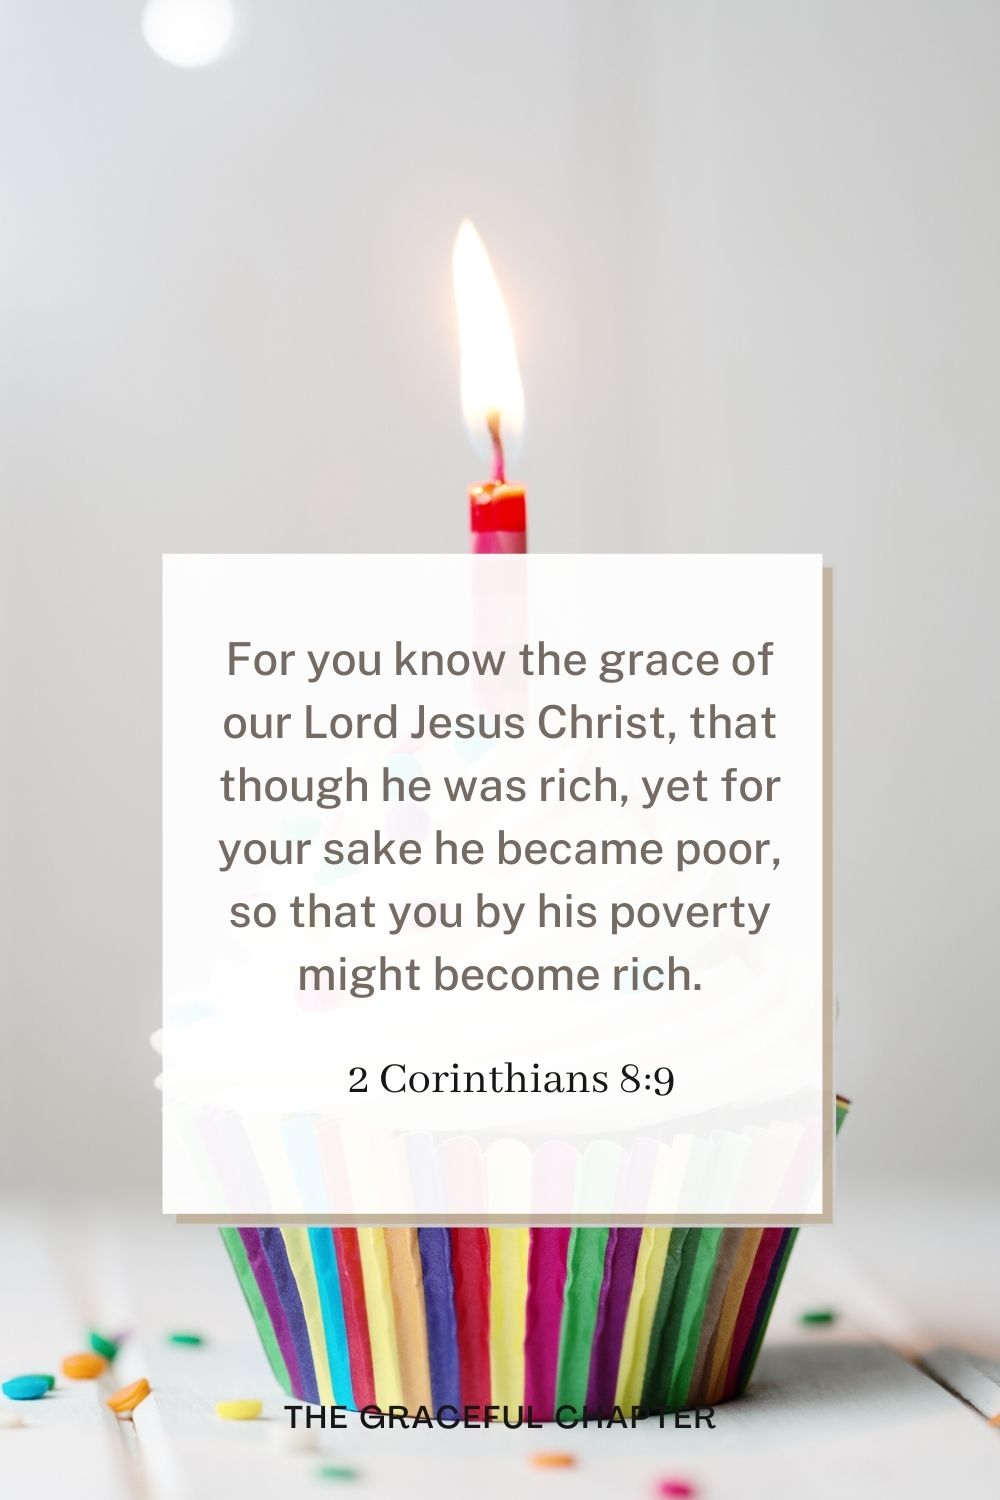 For you know the grace of our Lord Jesus Christ, that though he was rich, yet for your sake he became poor, so that you by his poverty might become rich. 2 Corinthians 8:9